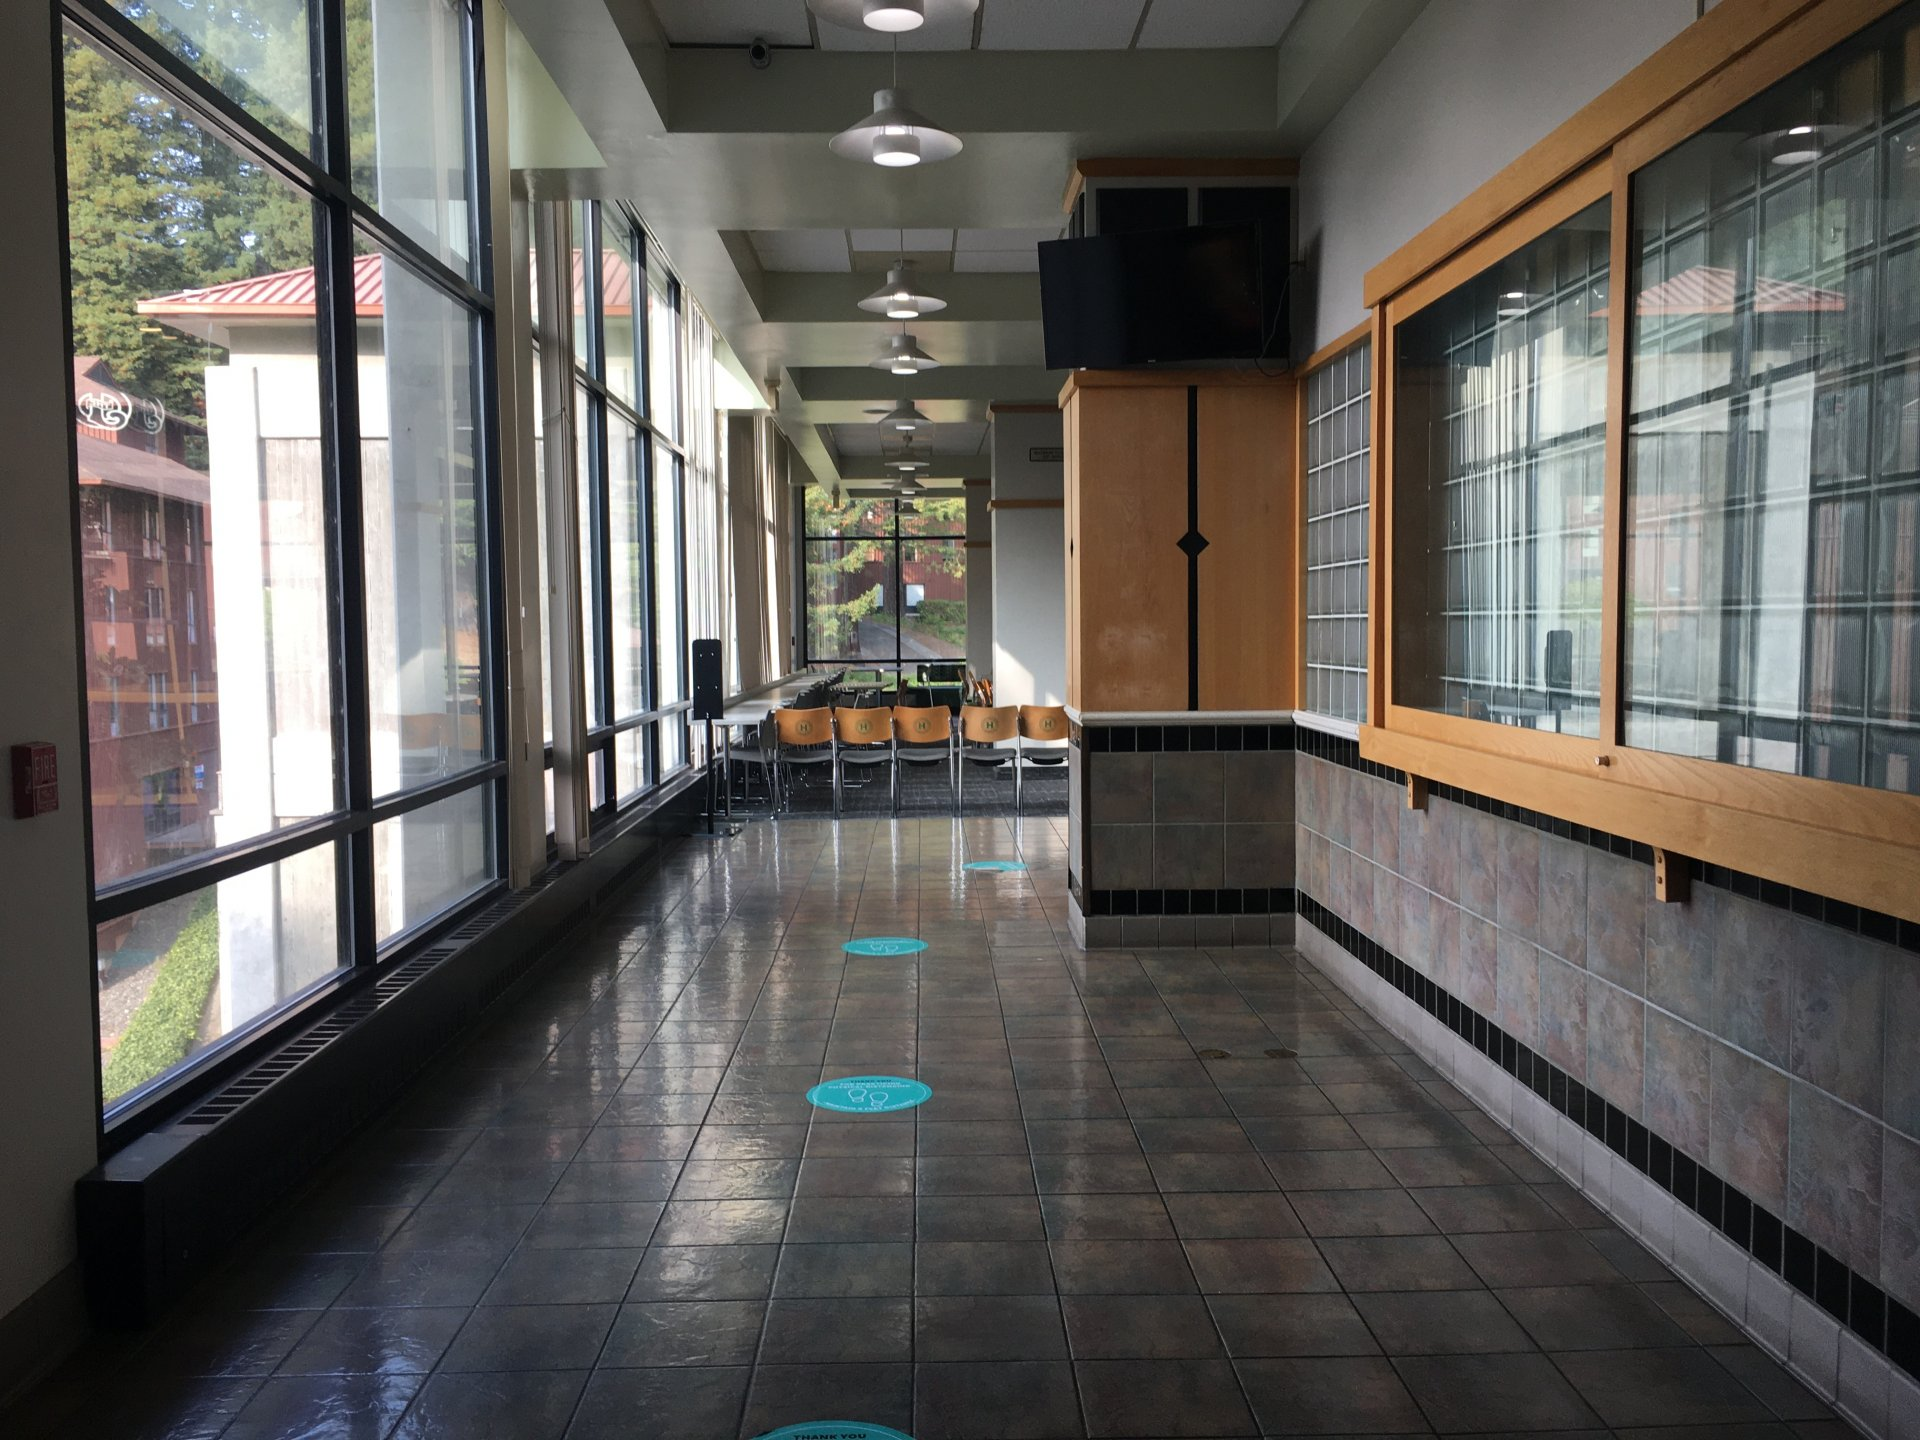 The J cafeteria entry way following the 6 ft apart arrows into the dining area, sept 14 | Photo by Becca Laurenson